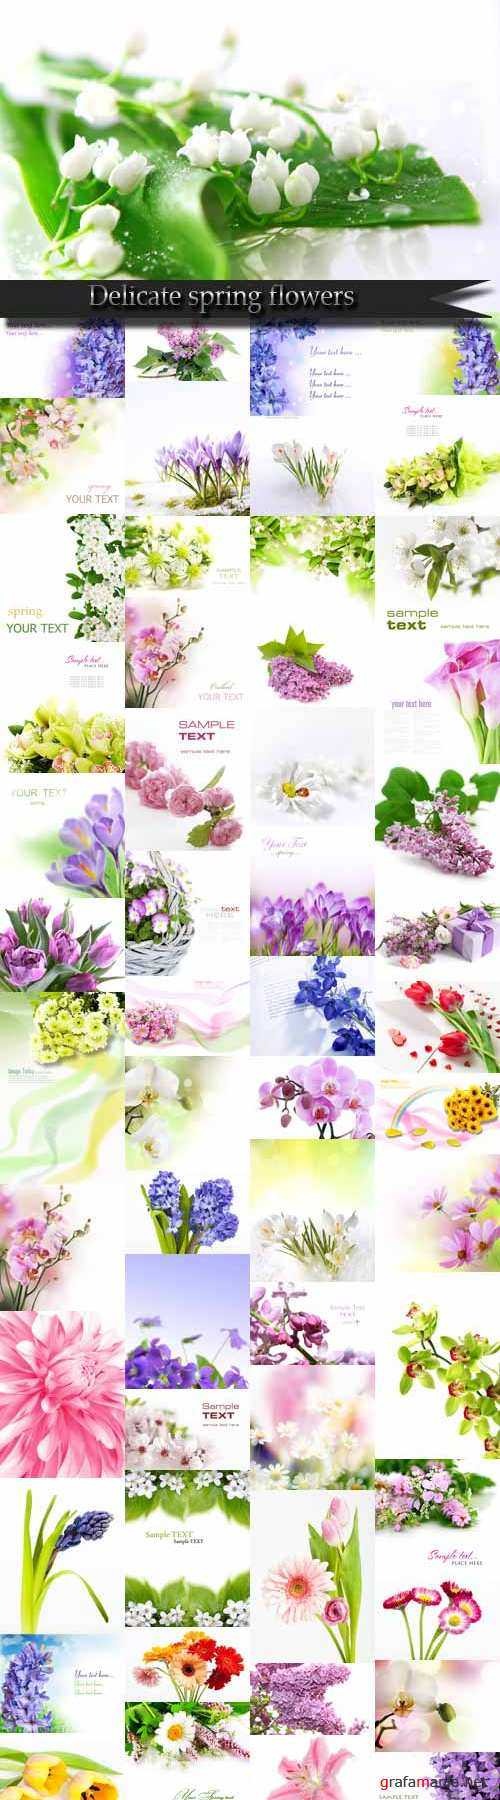 Delicate spring flowers Raster Graphics